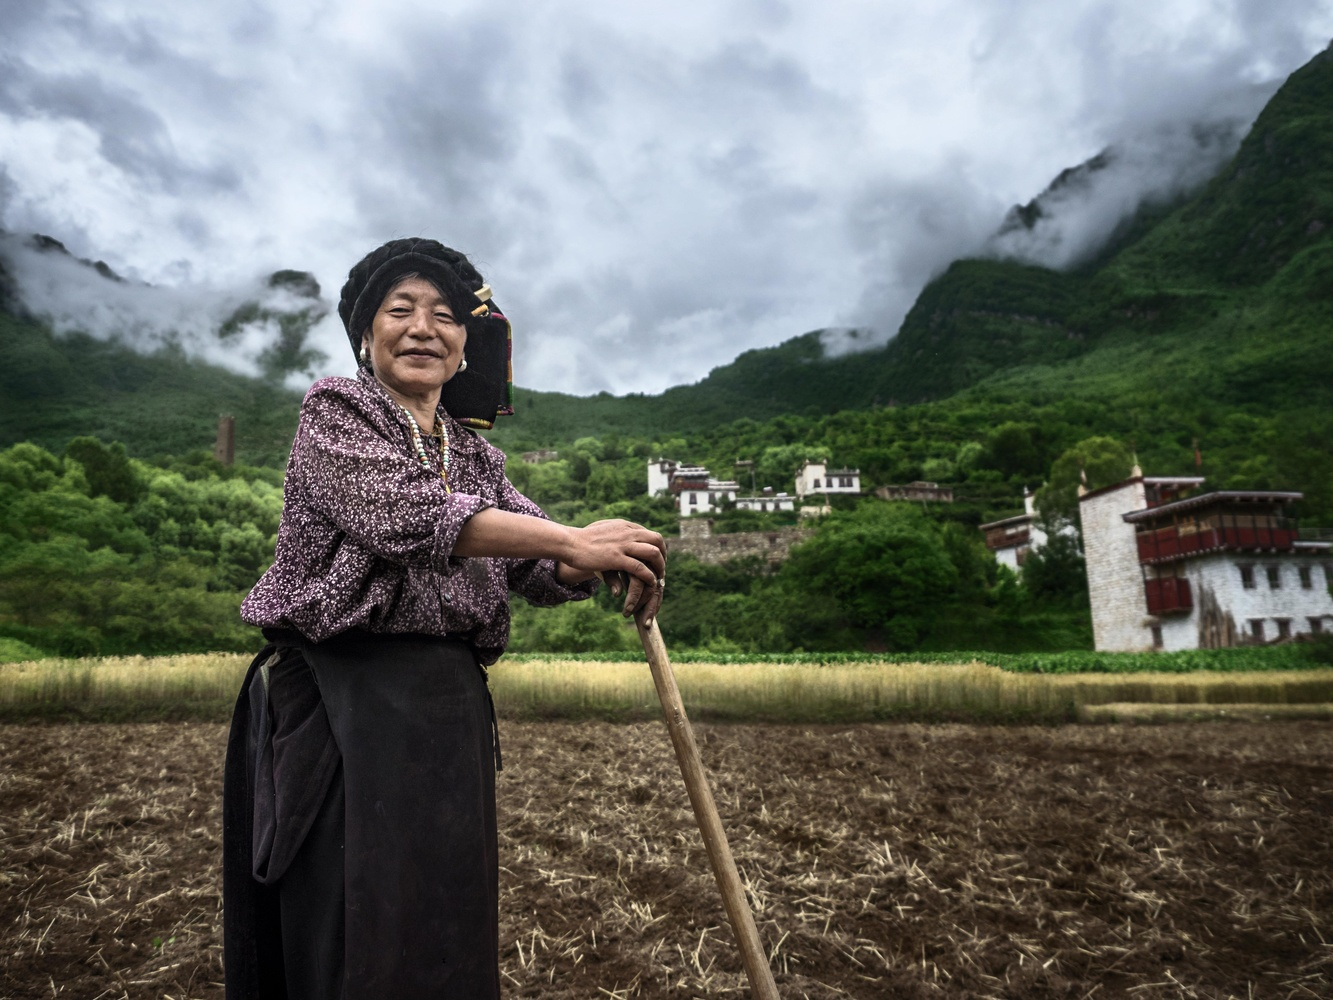 Organic Farming in Tibet by Ira Jacob